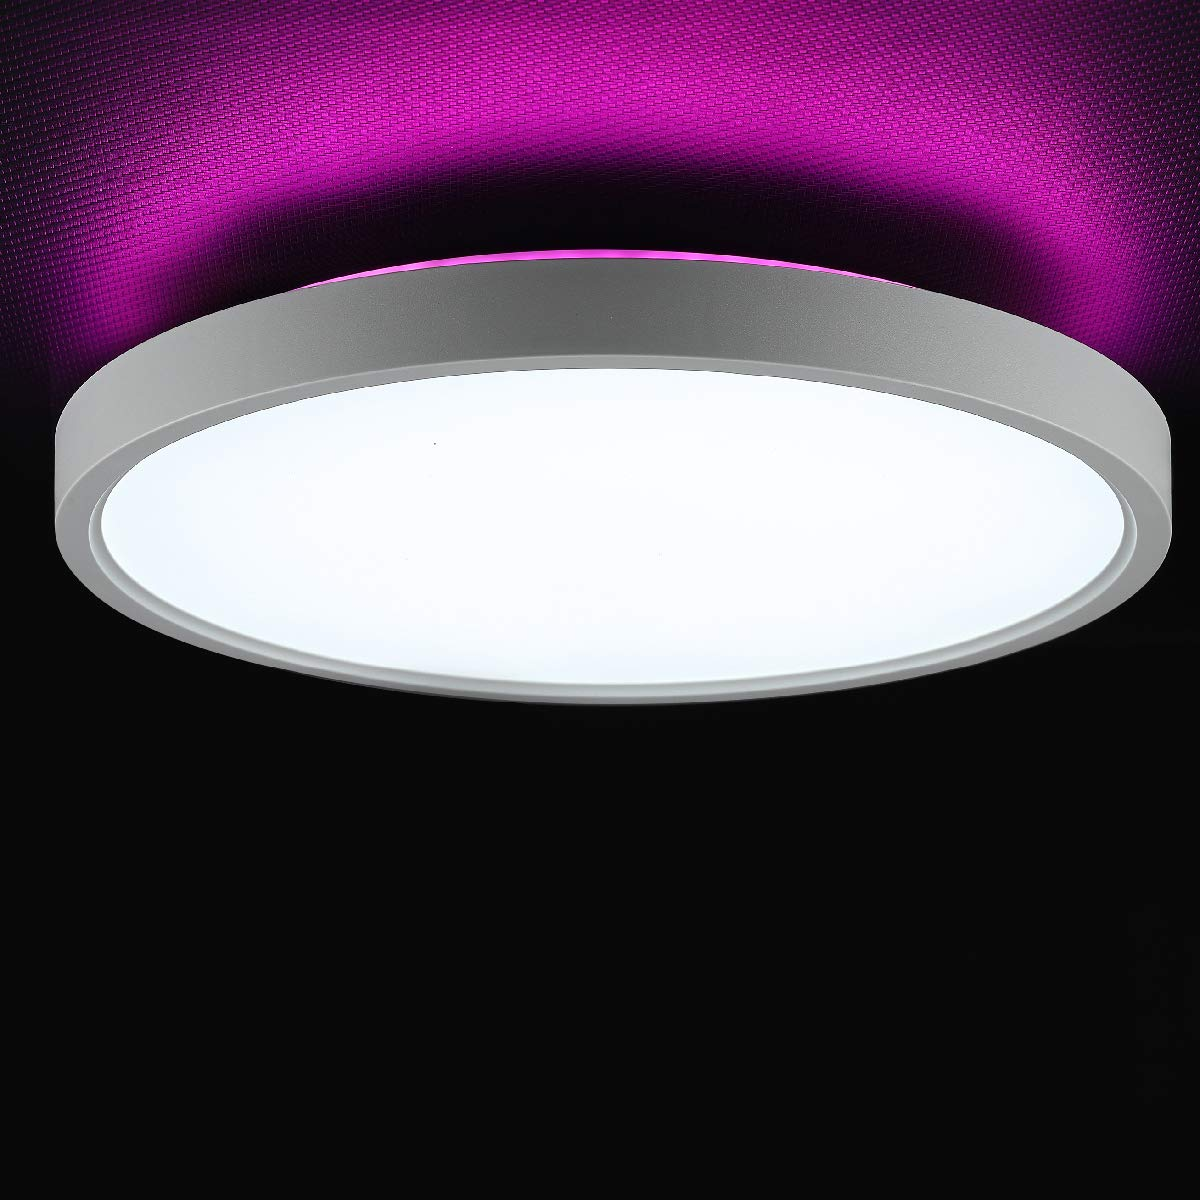 Taloya Led Flush Mount Ceiling Light With Back Ambient Light Pink 12 Inch 24w Round Low Profile Surface Mount Light Fixture For Kids Nursery Girl Room Bedroom Easy Installation Amazon Com